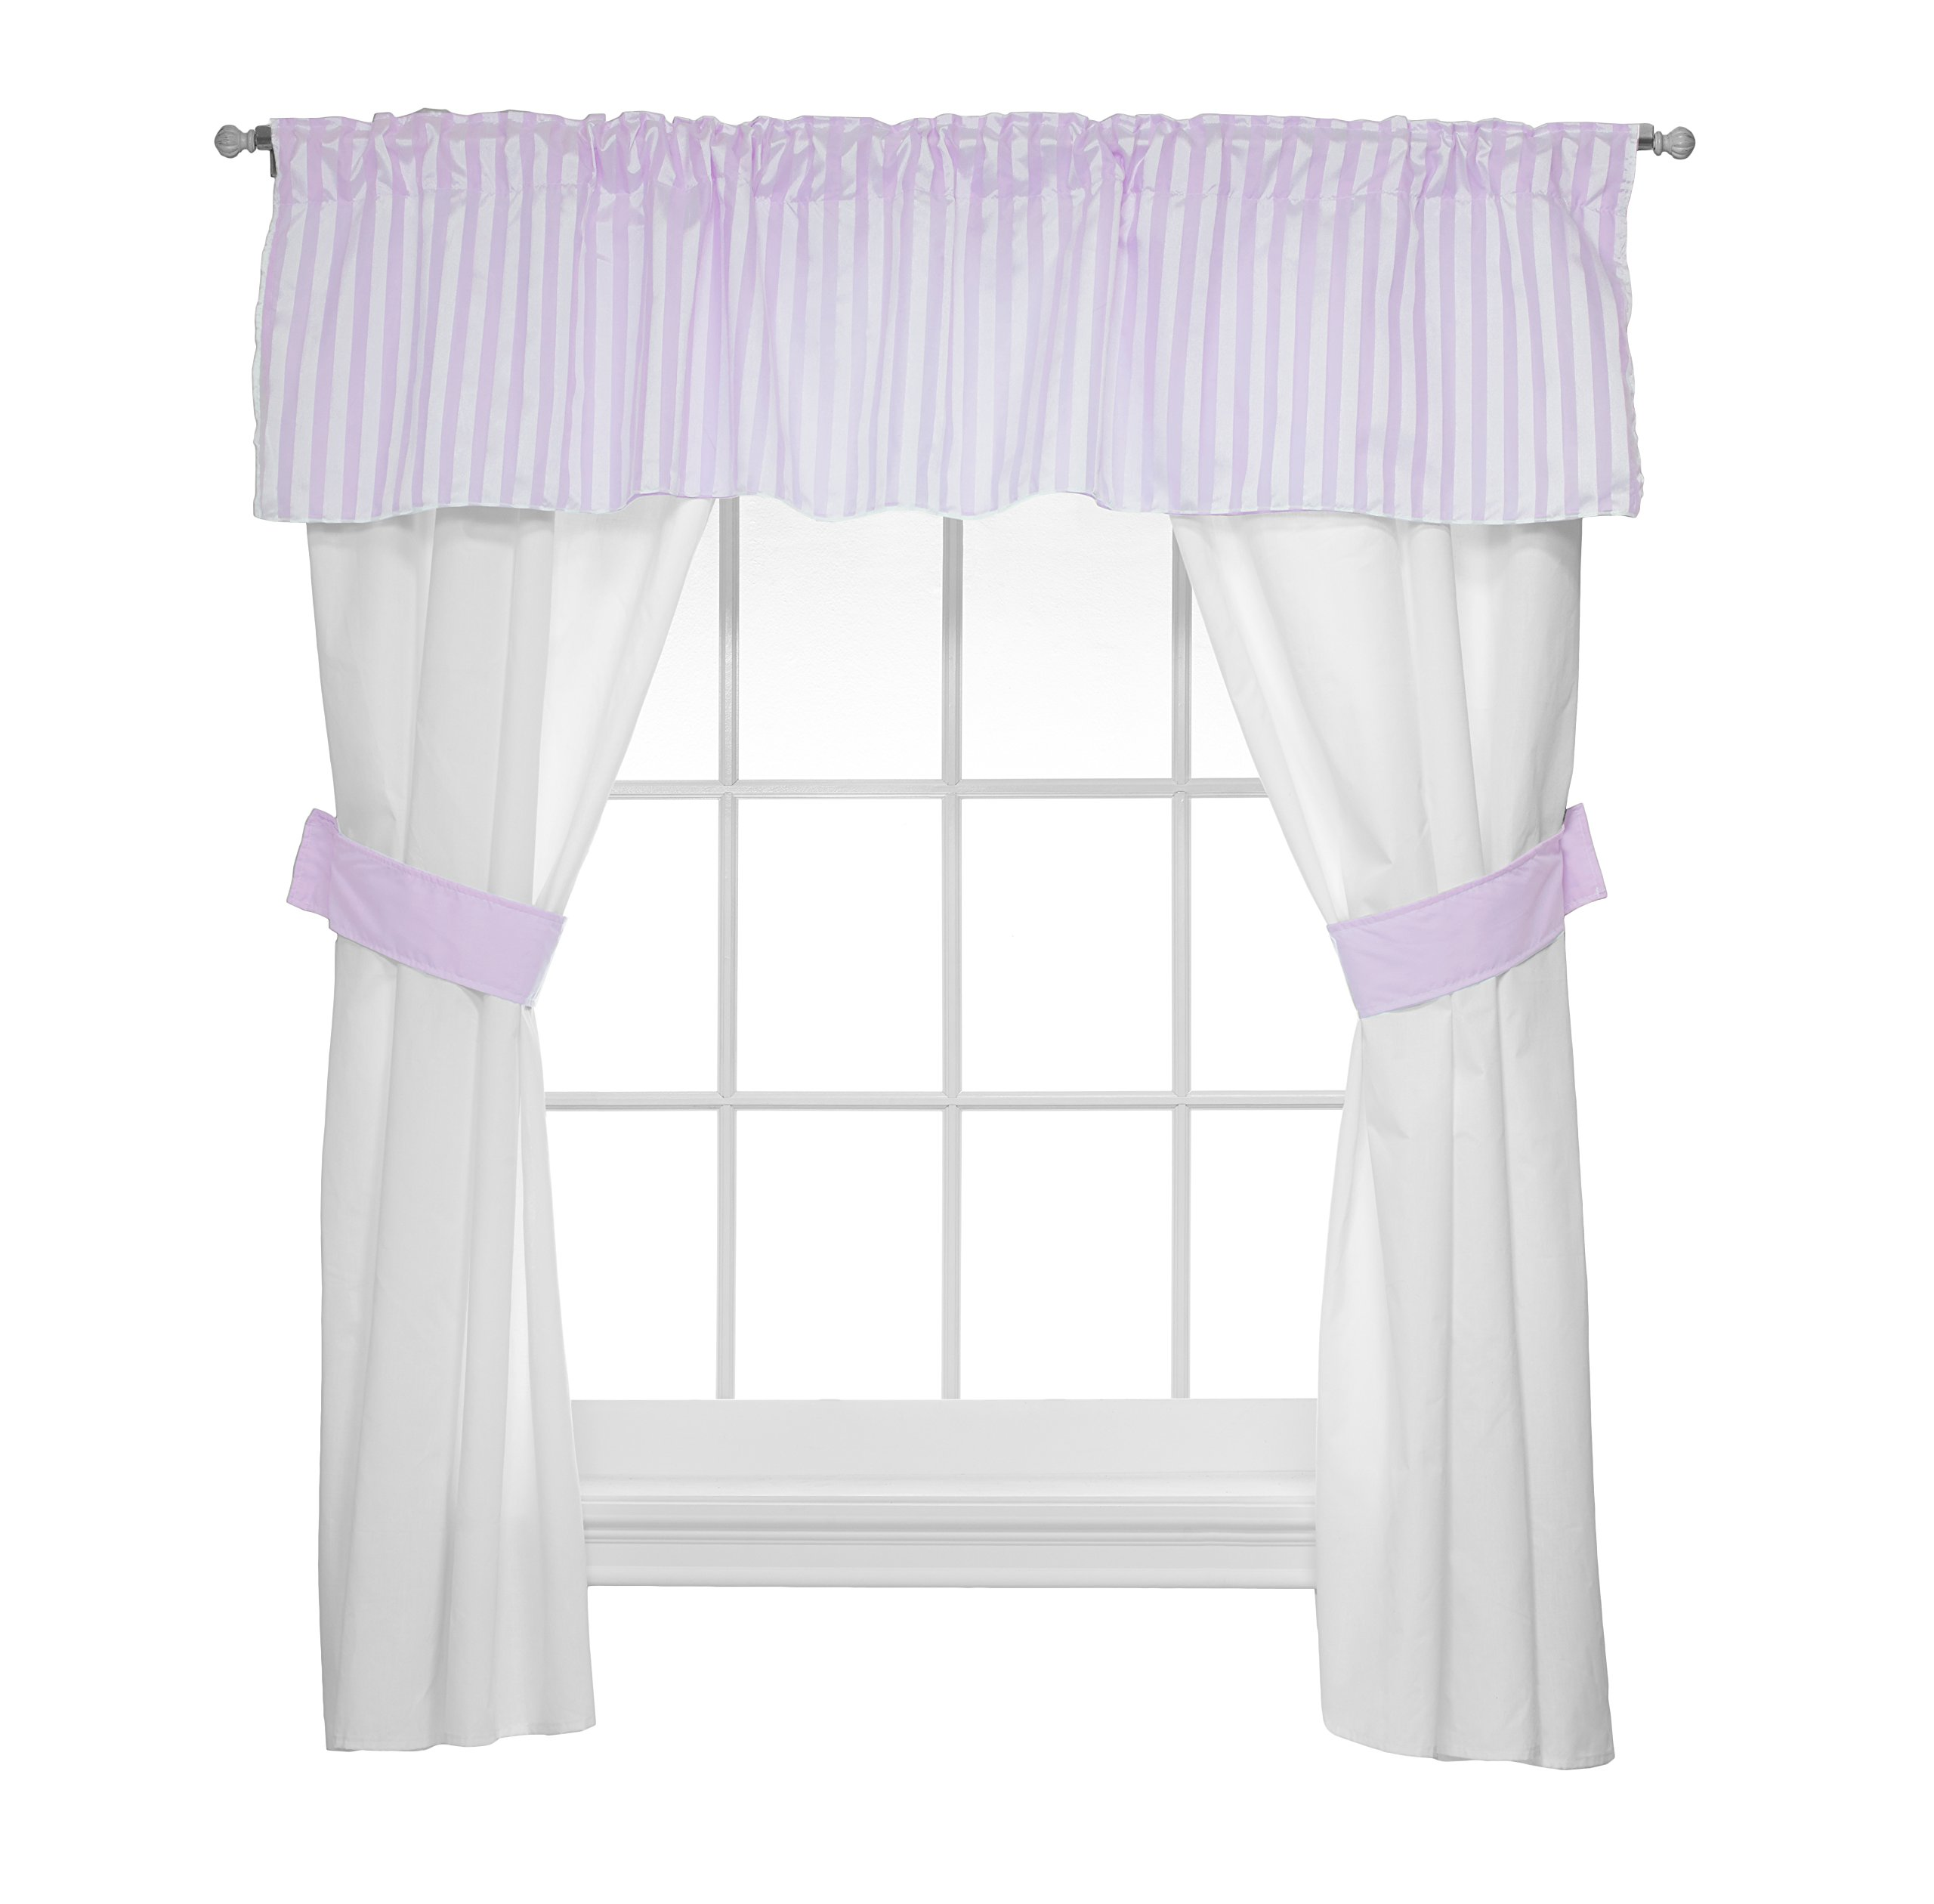 Baby Doll Candyland 5 Piece Window Valance and Curtain Set, Lavender